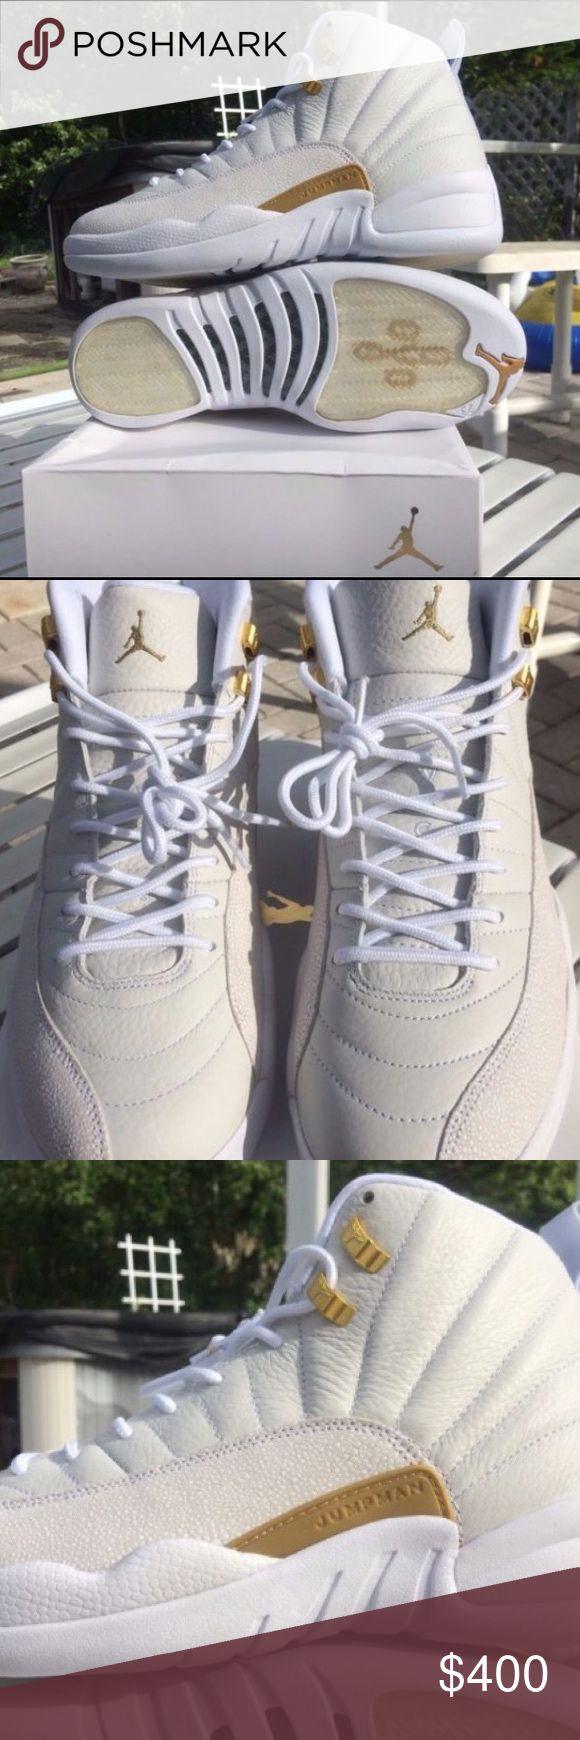 White OVO 12s New White OVO 12s in multiple sizes. Contact me @ (860) 362-1184 to purchase. Jordan Shoes Sneakers